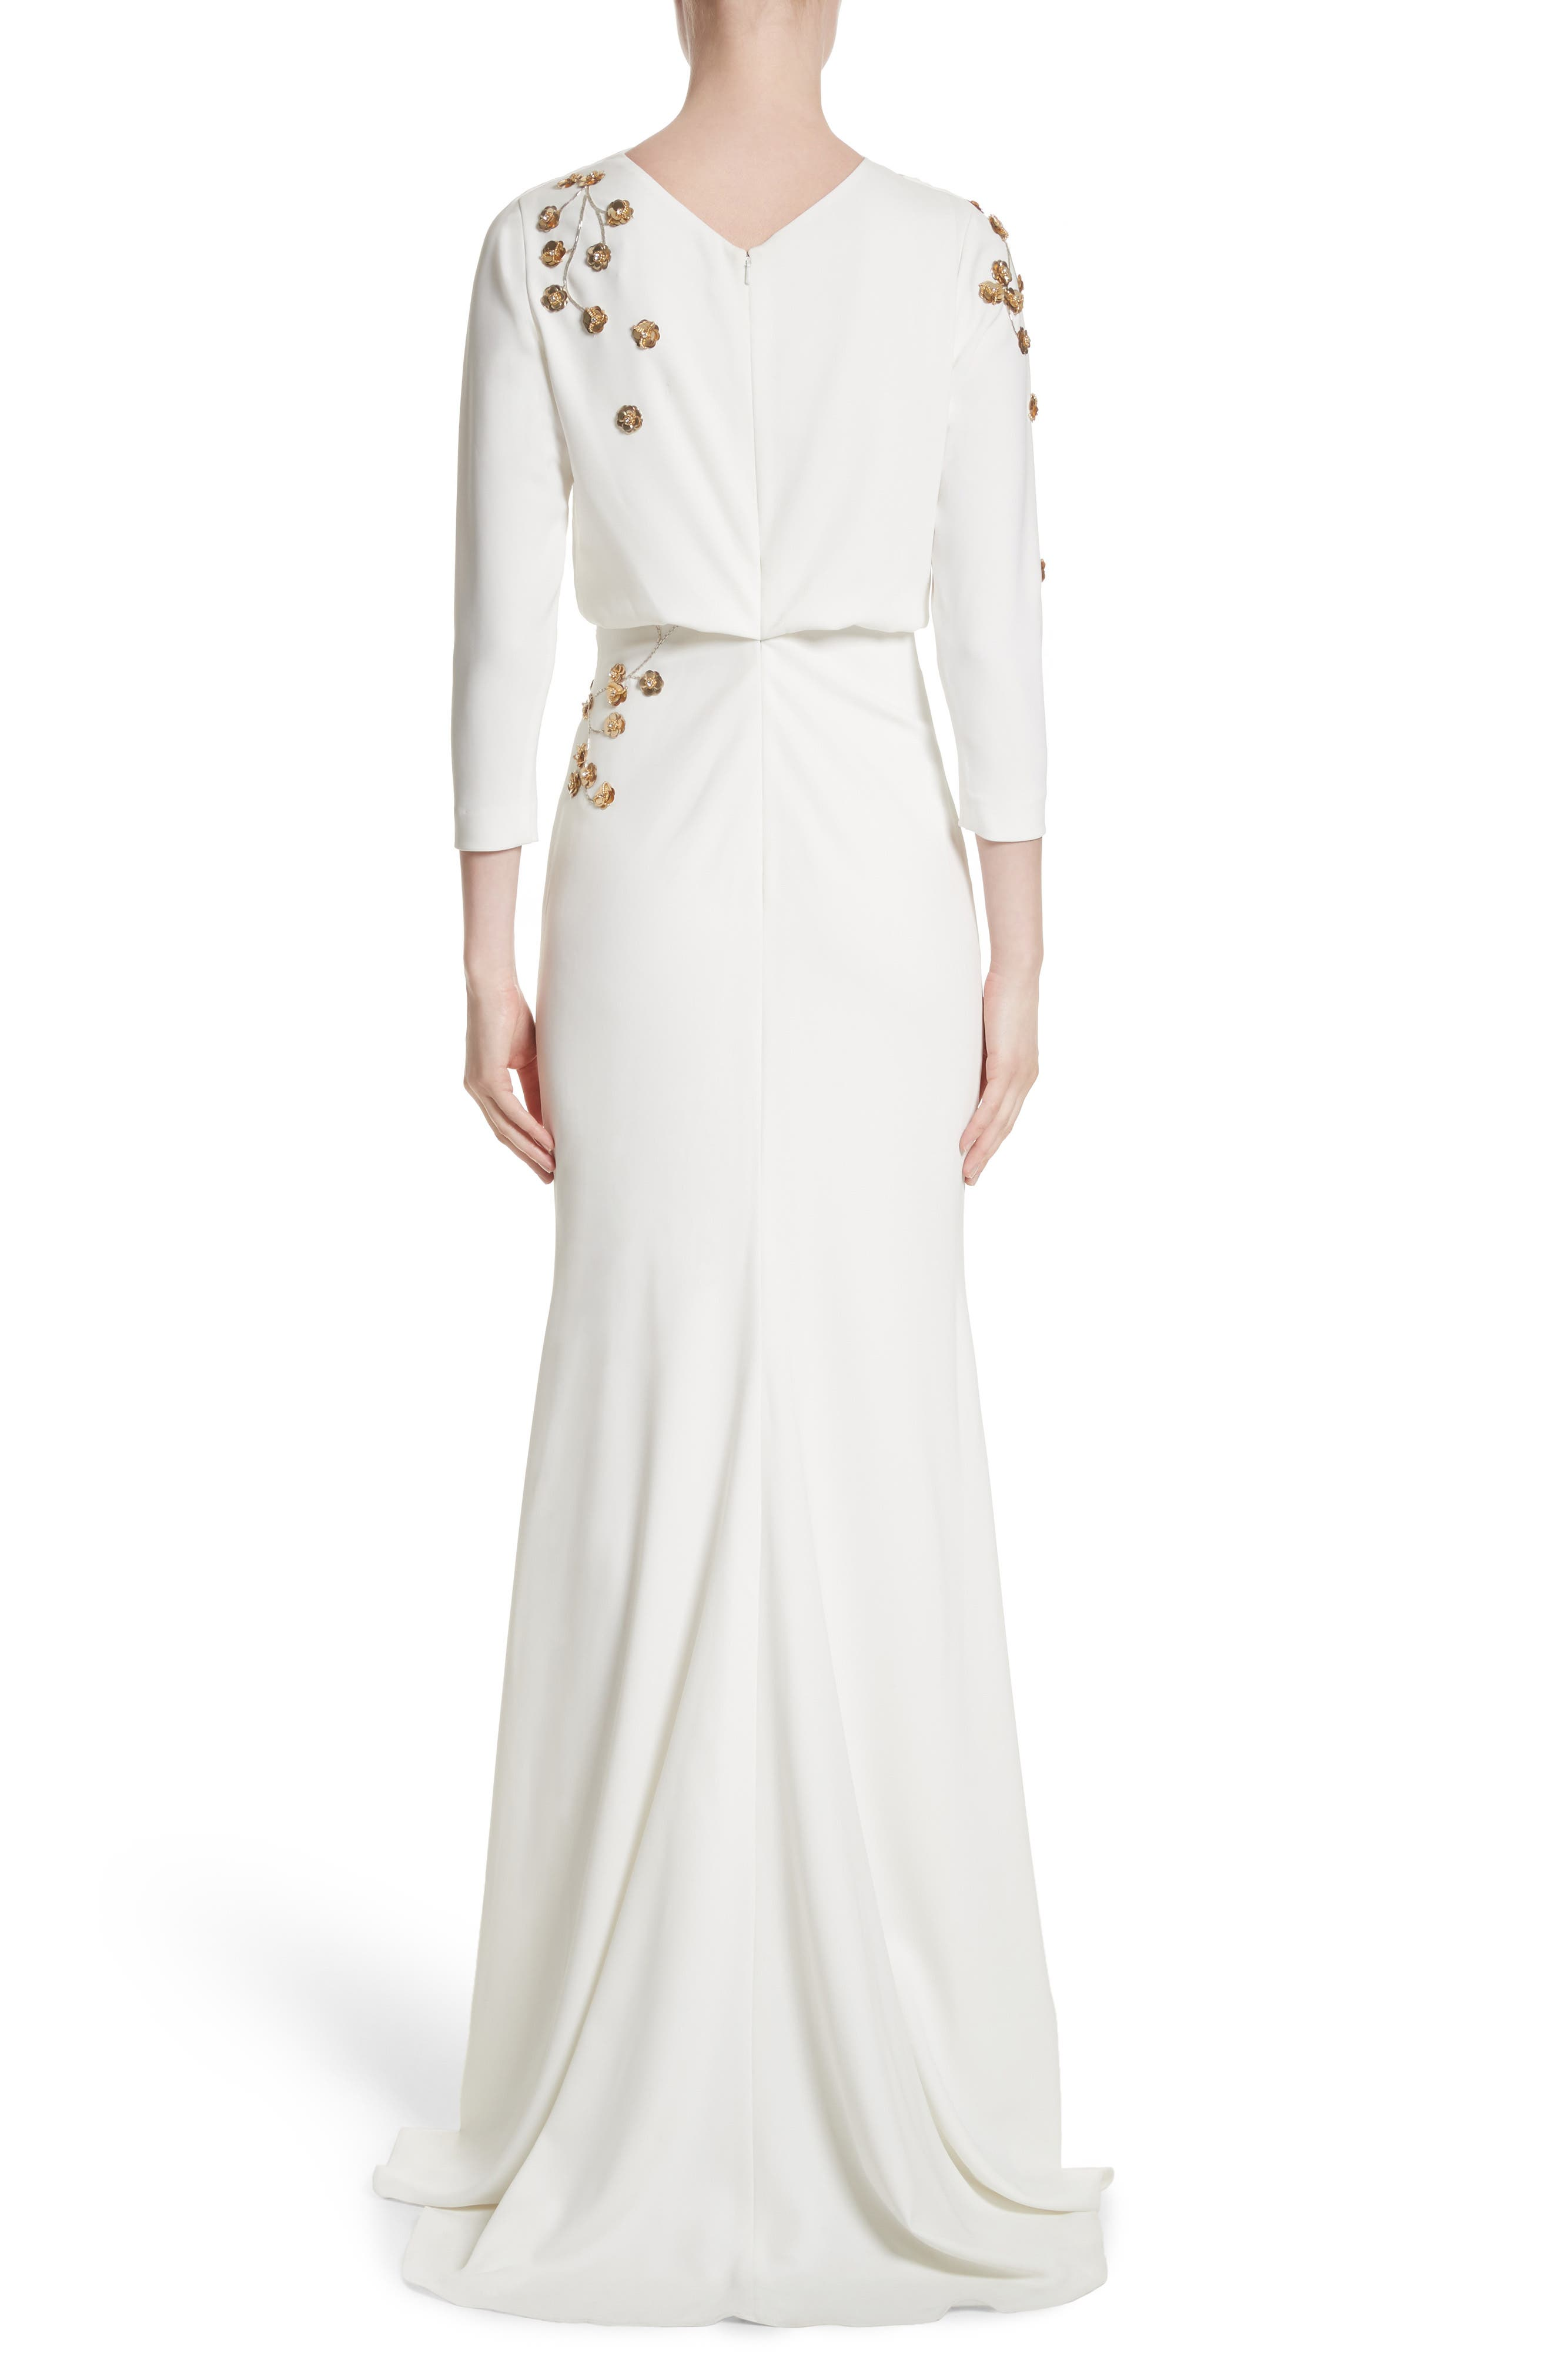 Badgley Mischka Couture Floral Embellished Crepe Gown,                             Alternate thumbnail 2, color,                             Light Ivory